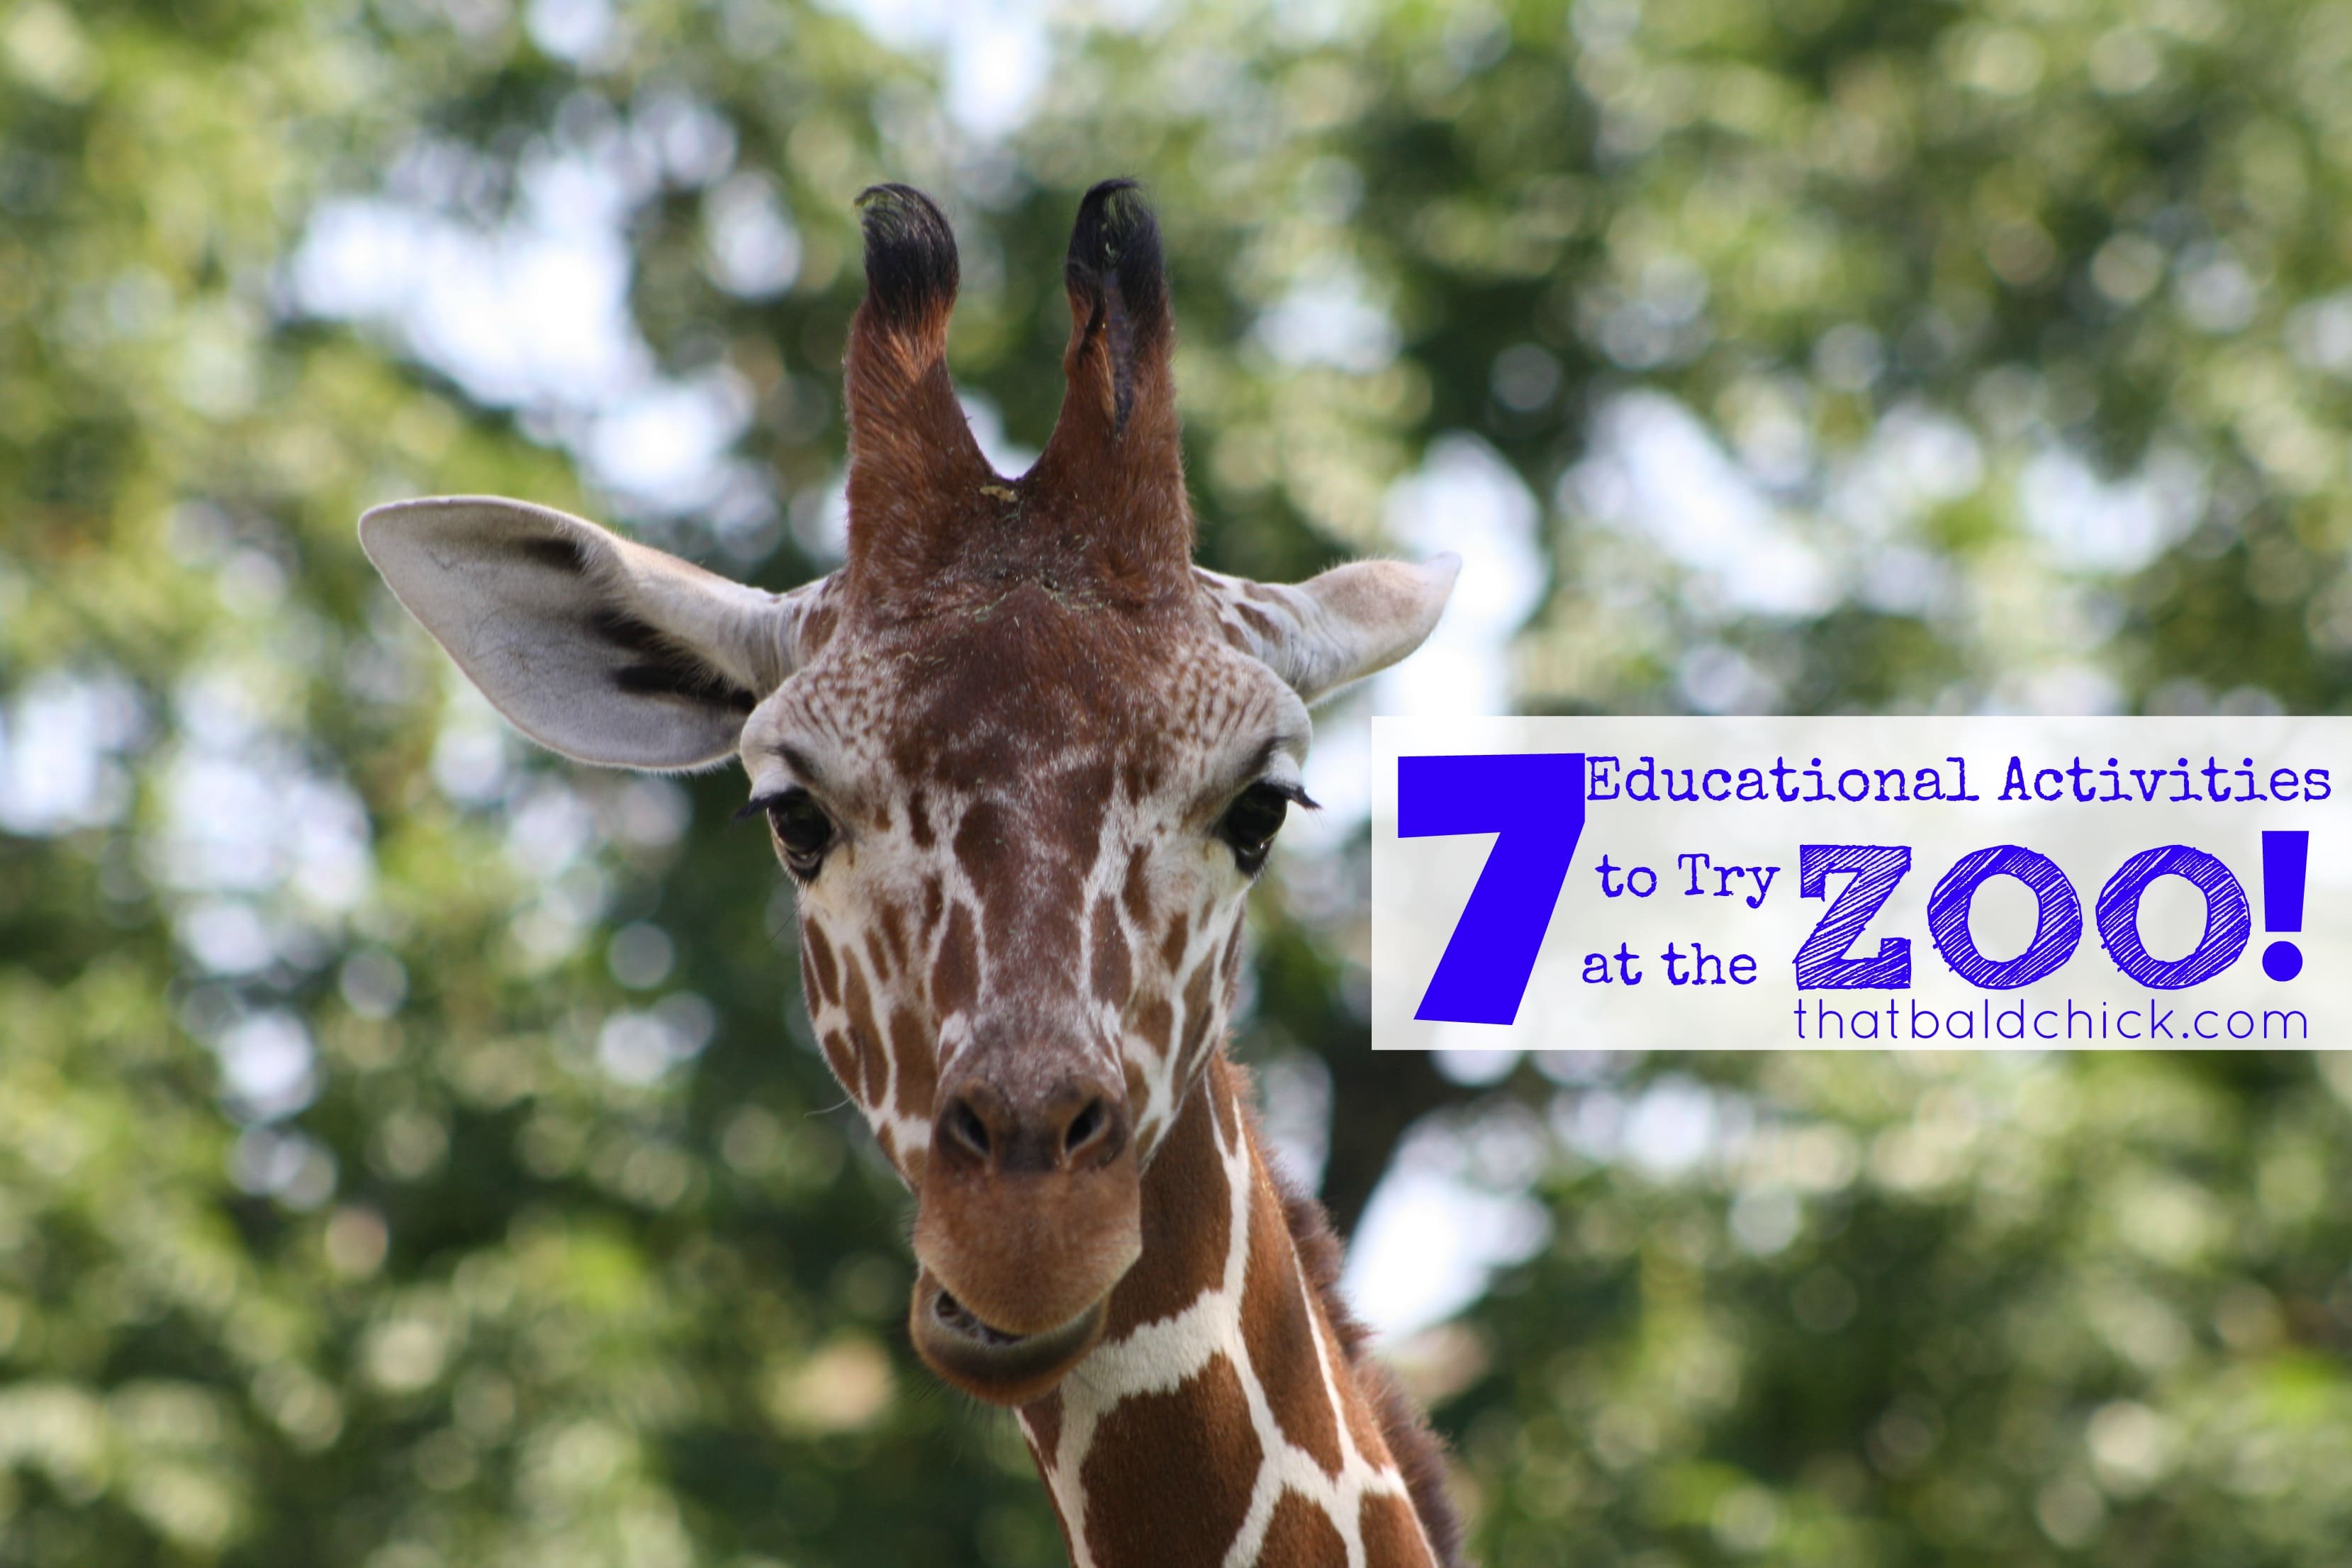 7 educational activities to try at the zoo at thatbaldchick.com